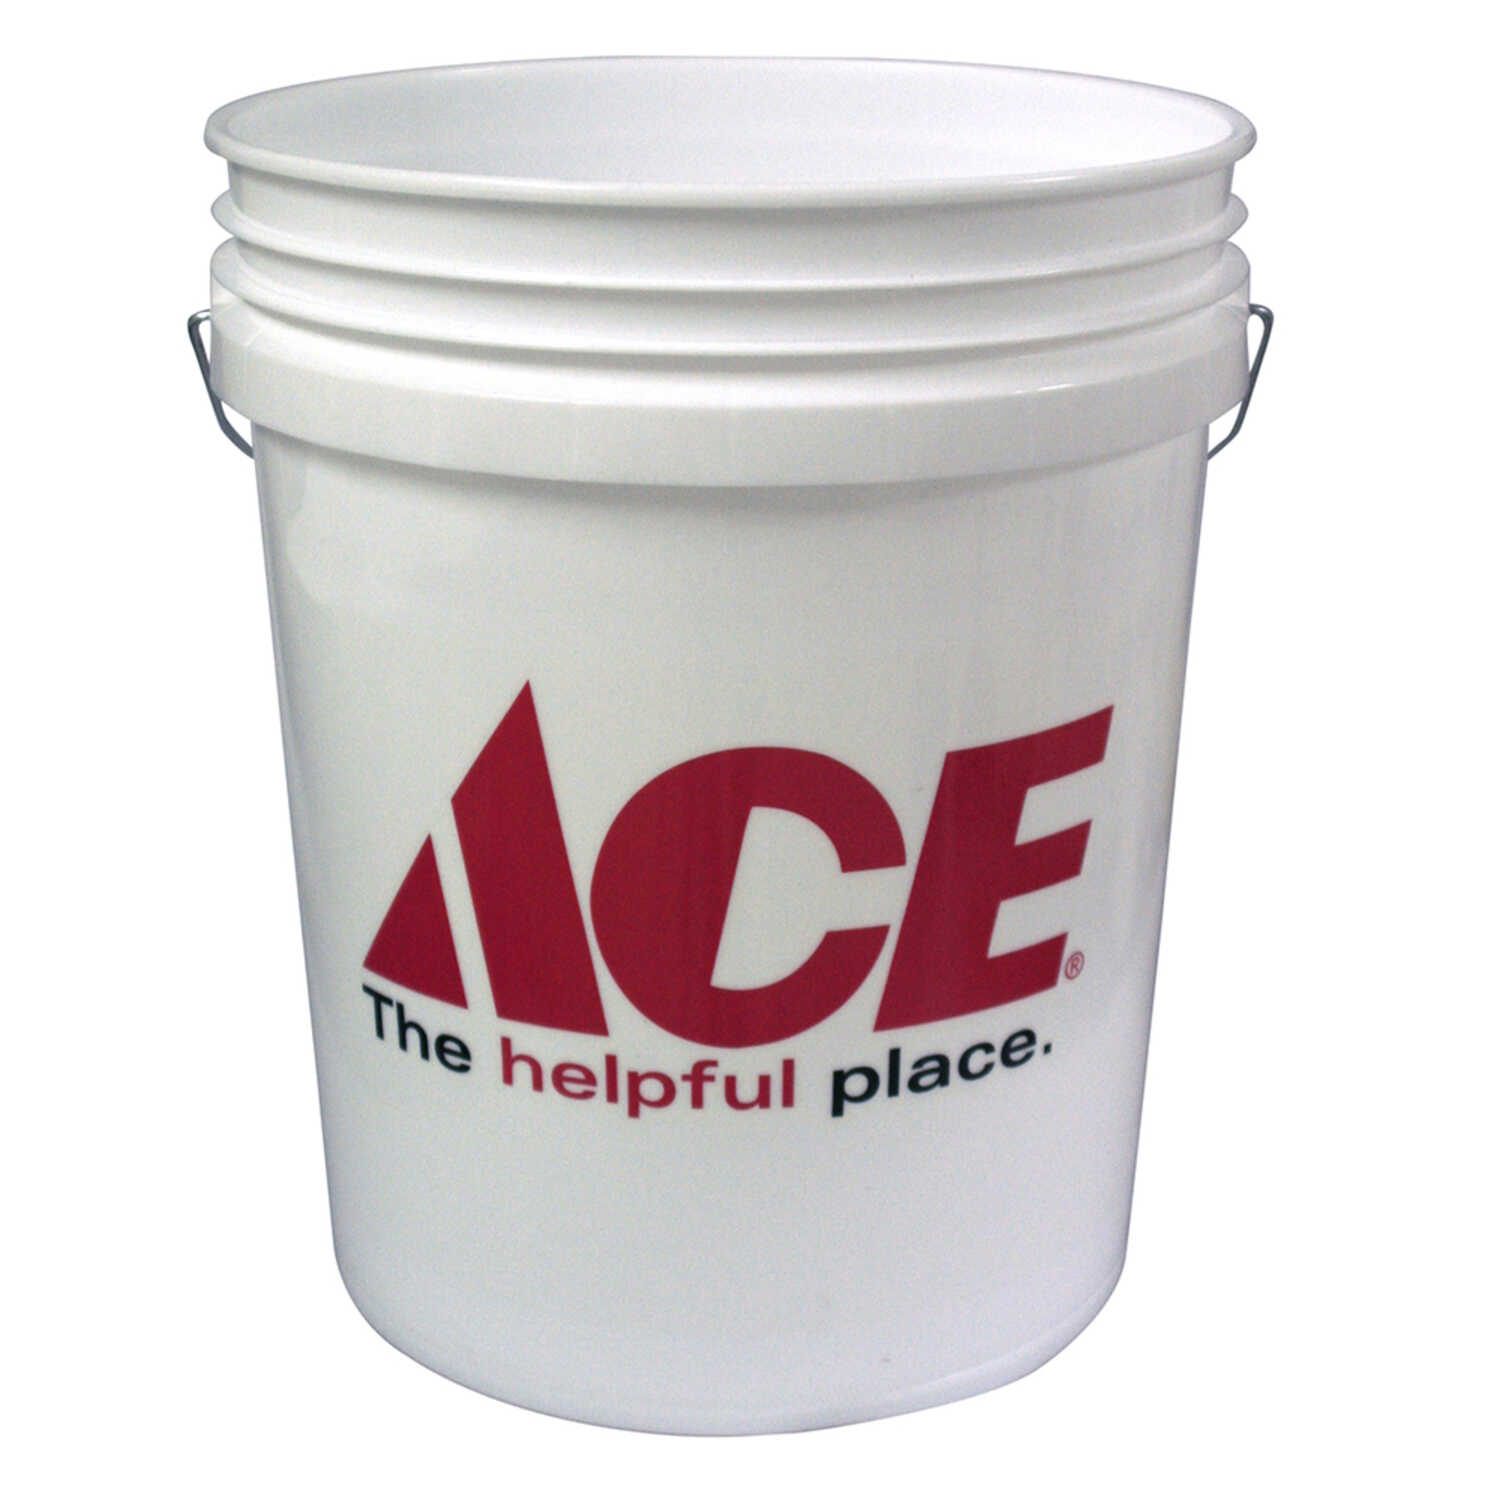 Ace White 5 gal  Plastic Bucket - Ace Hardware